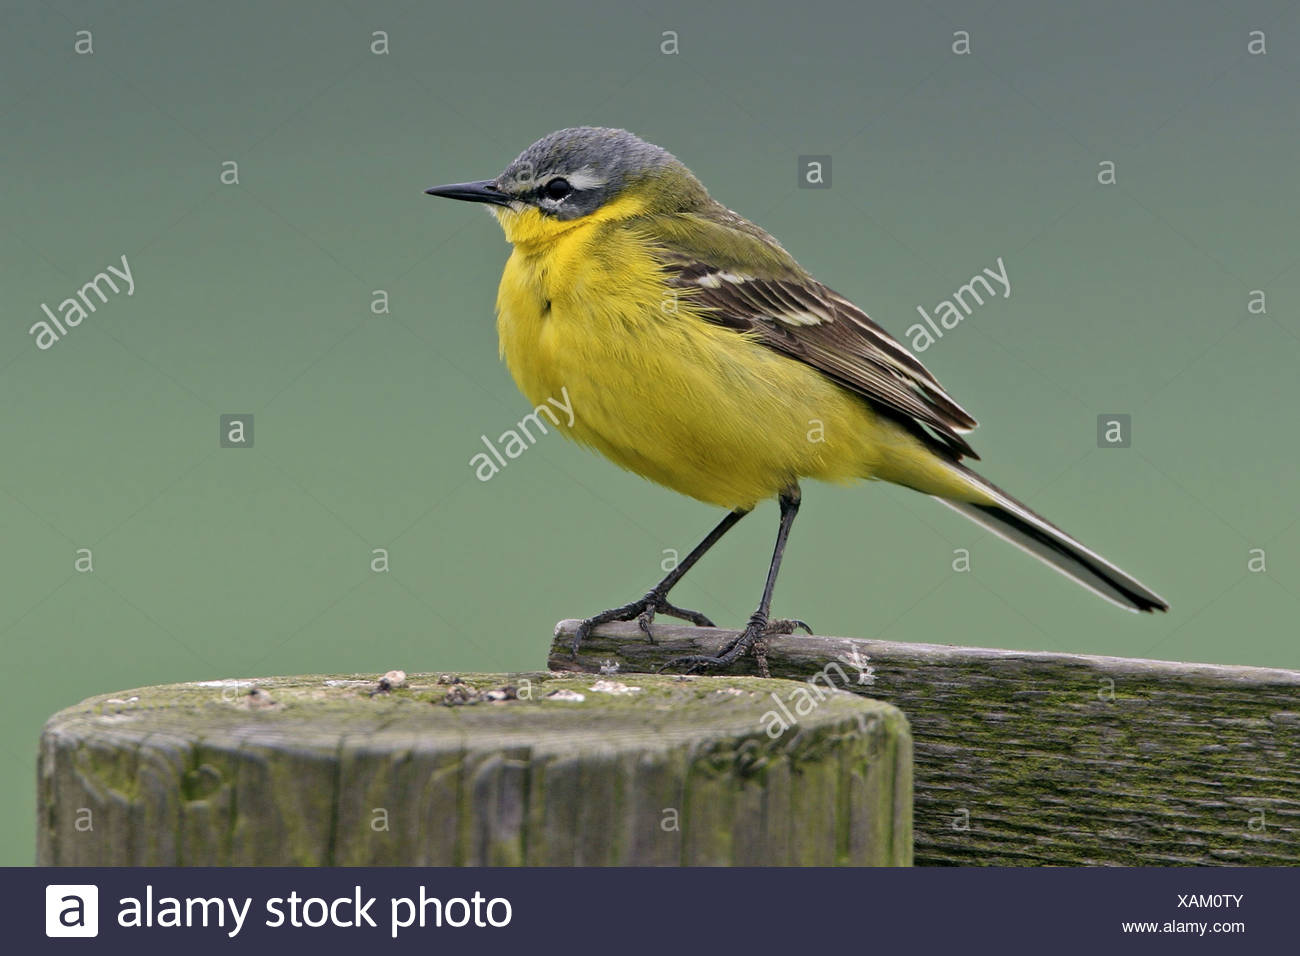 Blue-headed Wagtail, Yellow Wagtail (Motacilla flava flava), sitting on pile, Netherlands, Texel - Stock Image